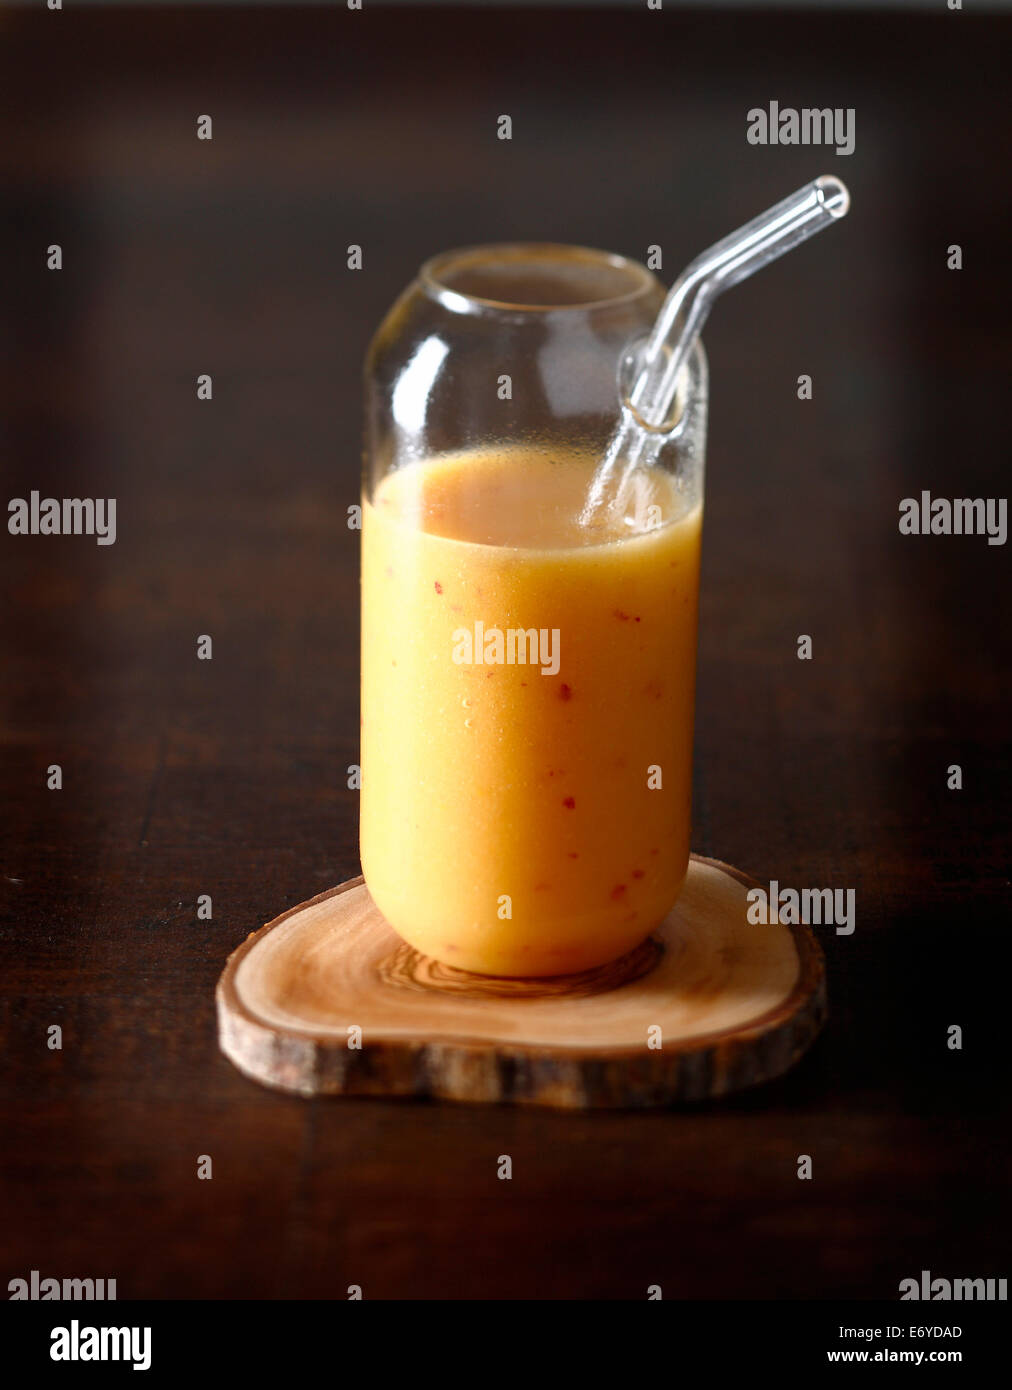 Pineapple,pear and apricot juice - Stock Image